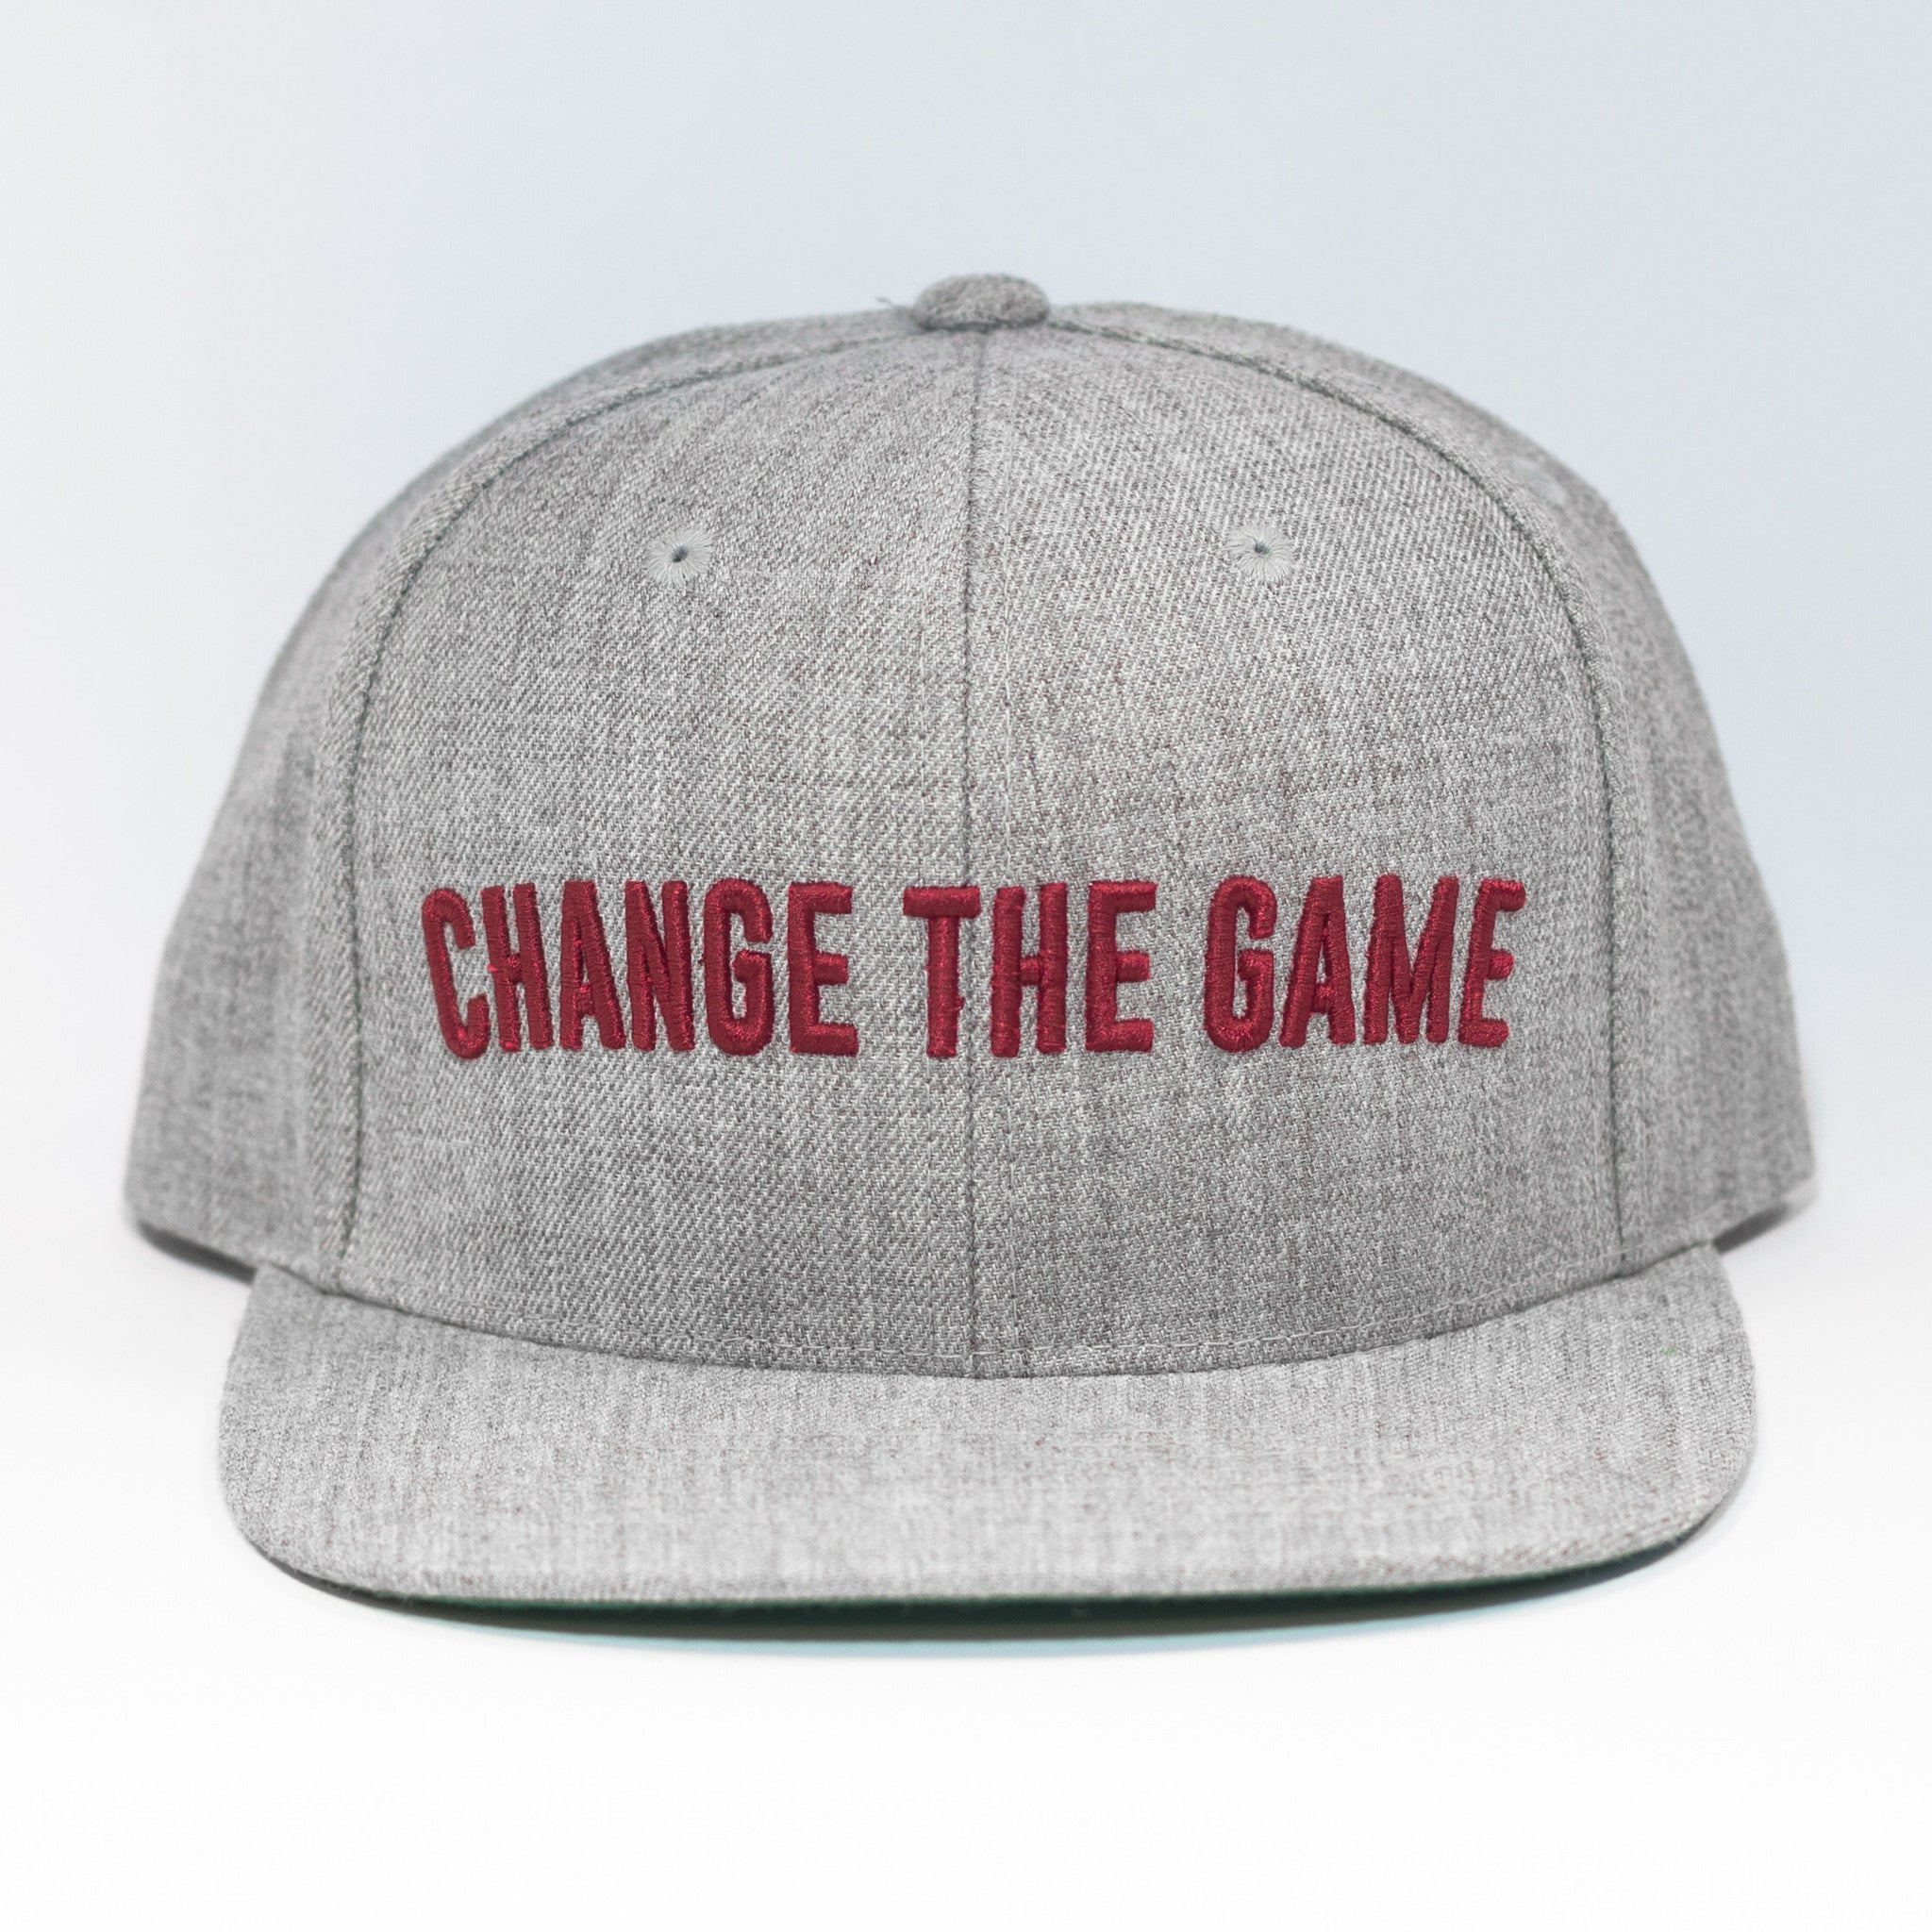 Change The Game Snapback - Grey/ Red